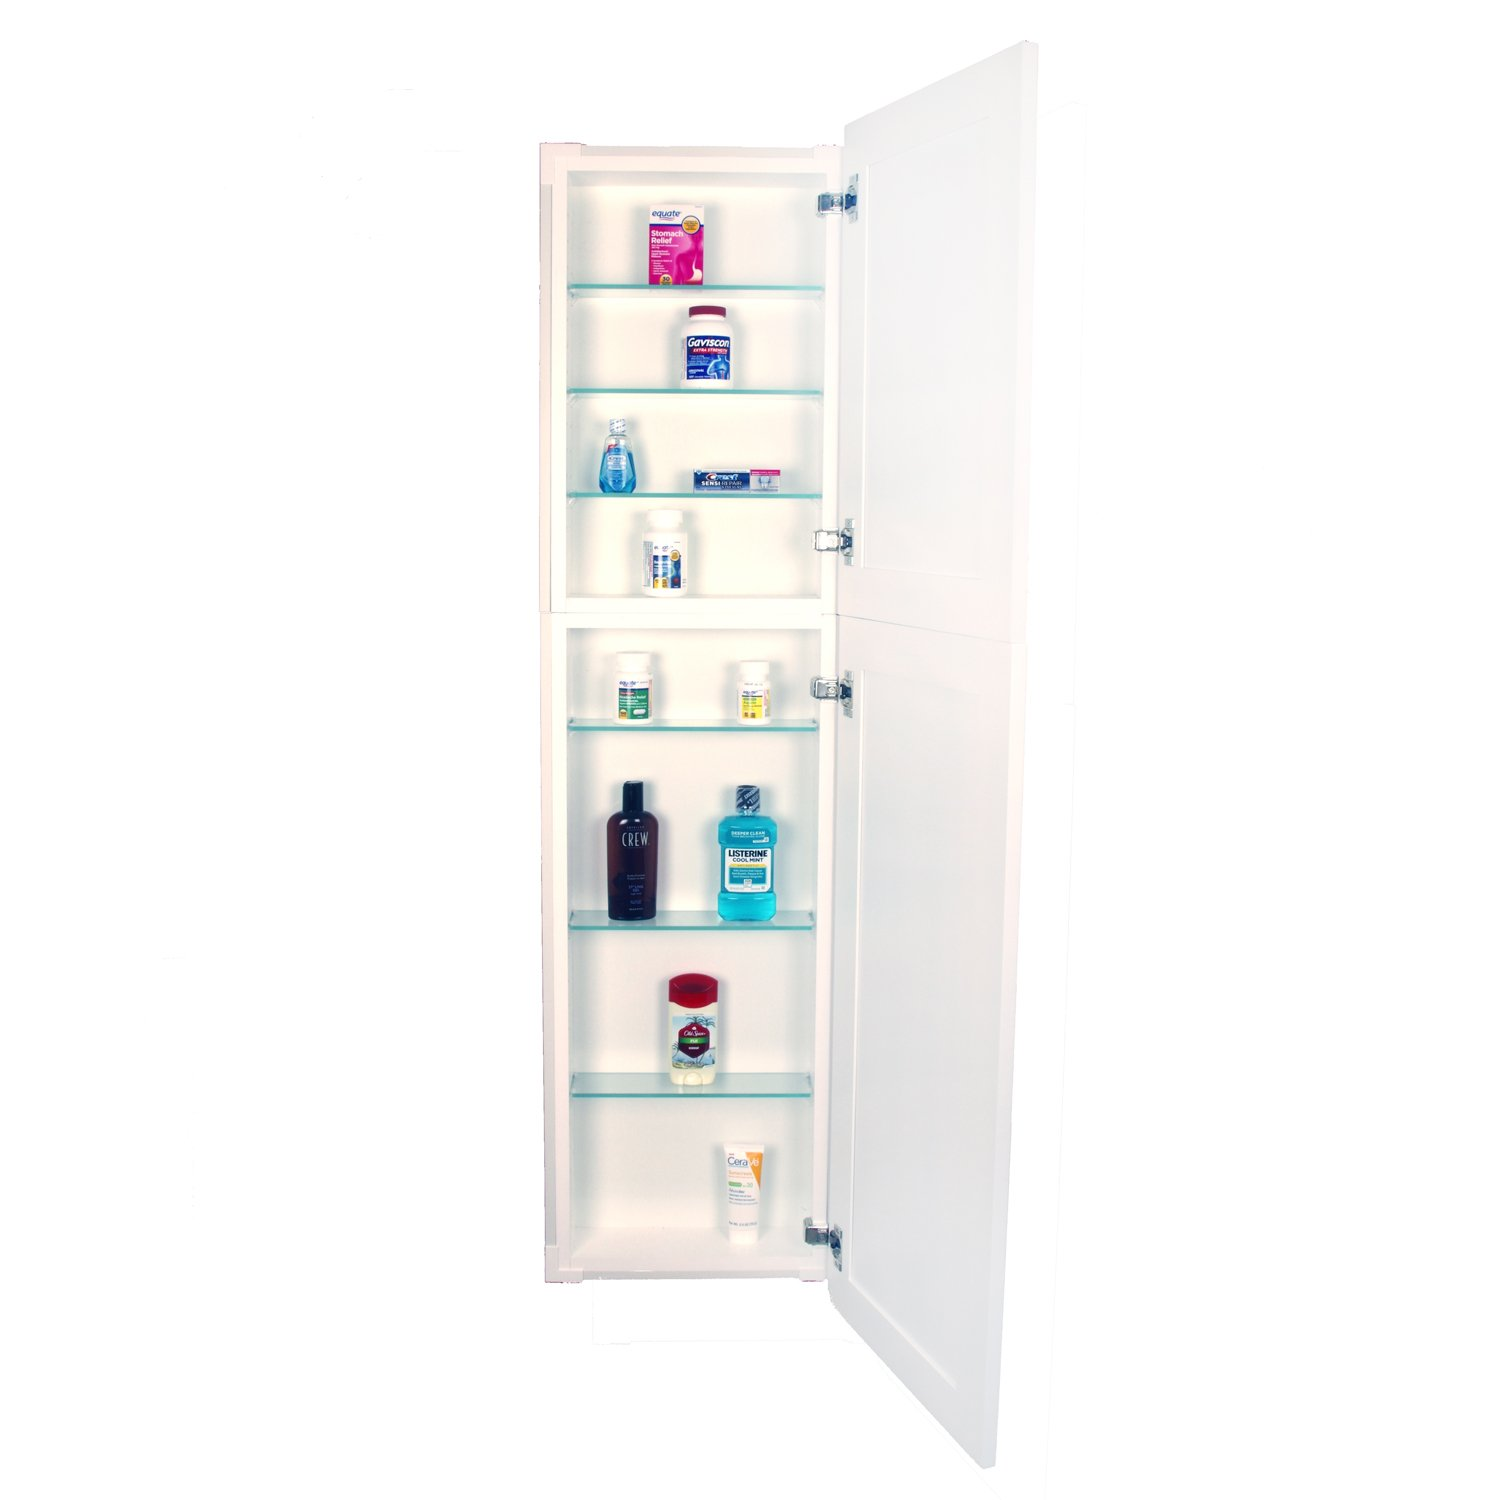 WG Wood Products Shaker Style Frameless Recessed Wall Bathroom Medicine Storage Pantry Cabinet with Multiple Finishes, 56'', White Enamel by WG Wood Products (Image #5)